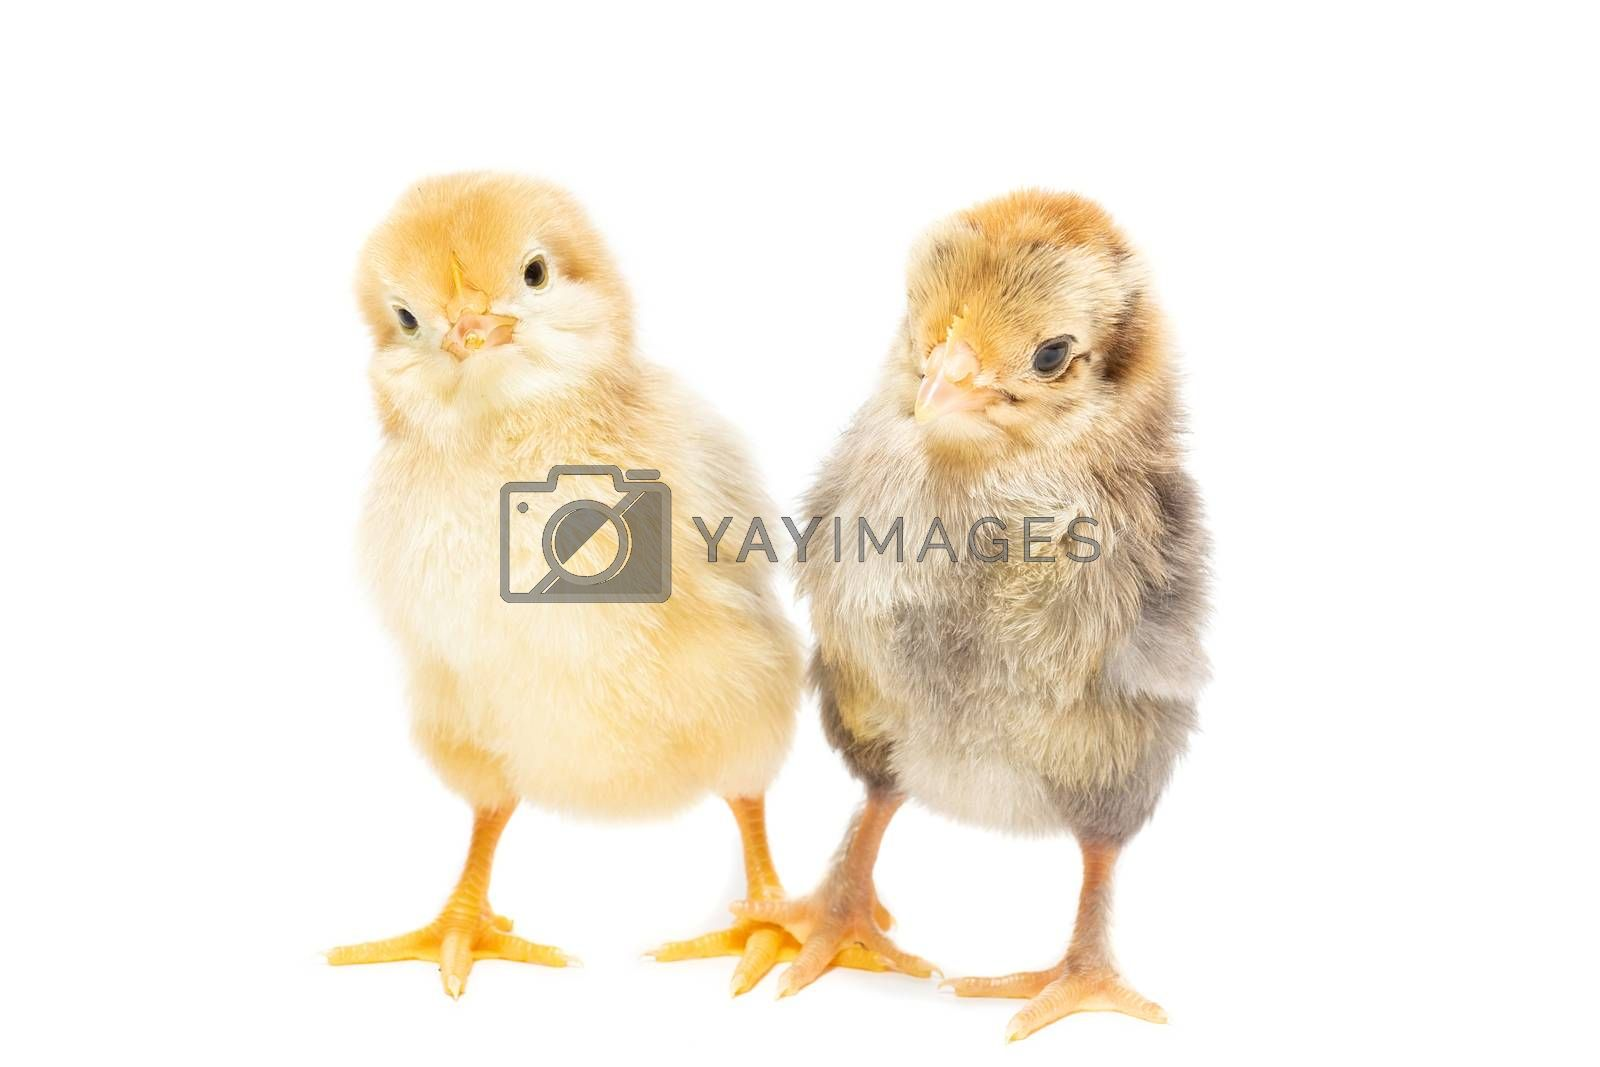 Two chickens on white background, isolation, village, summer